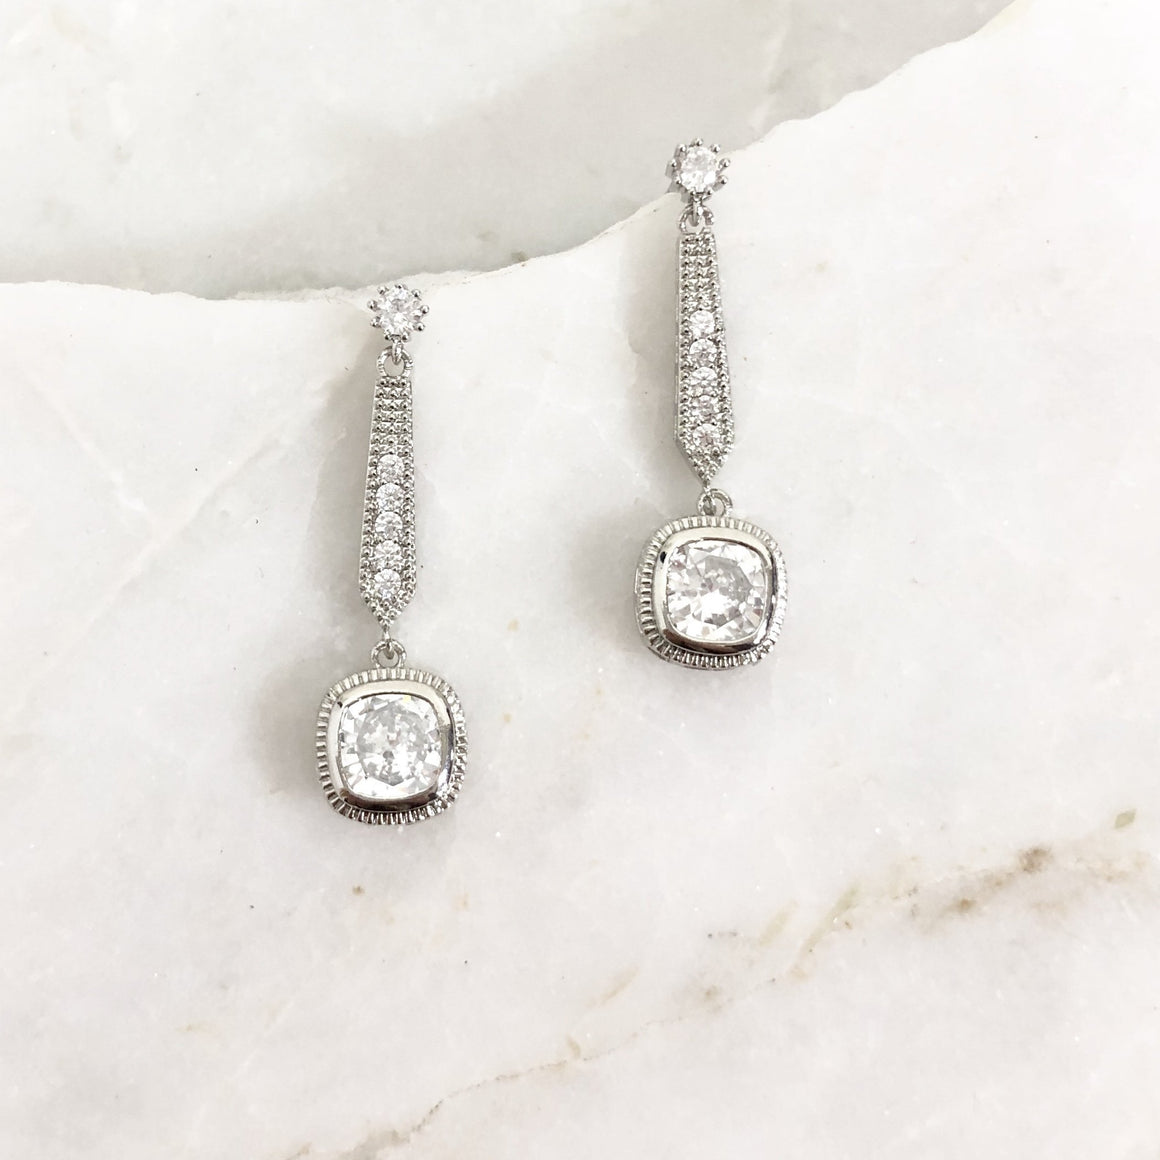 At The Gala Sparkle Earrings in Silver - Dainty Hooligan